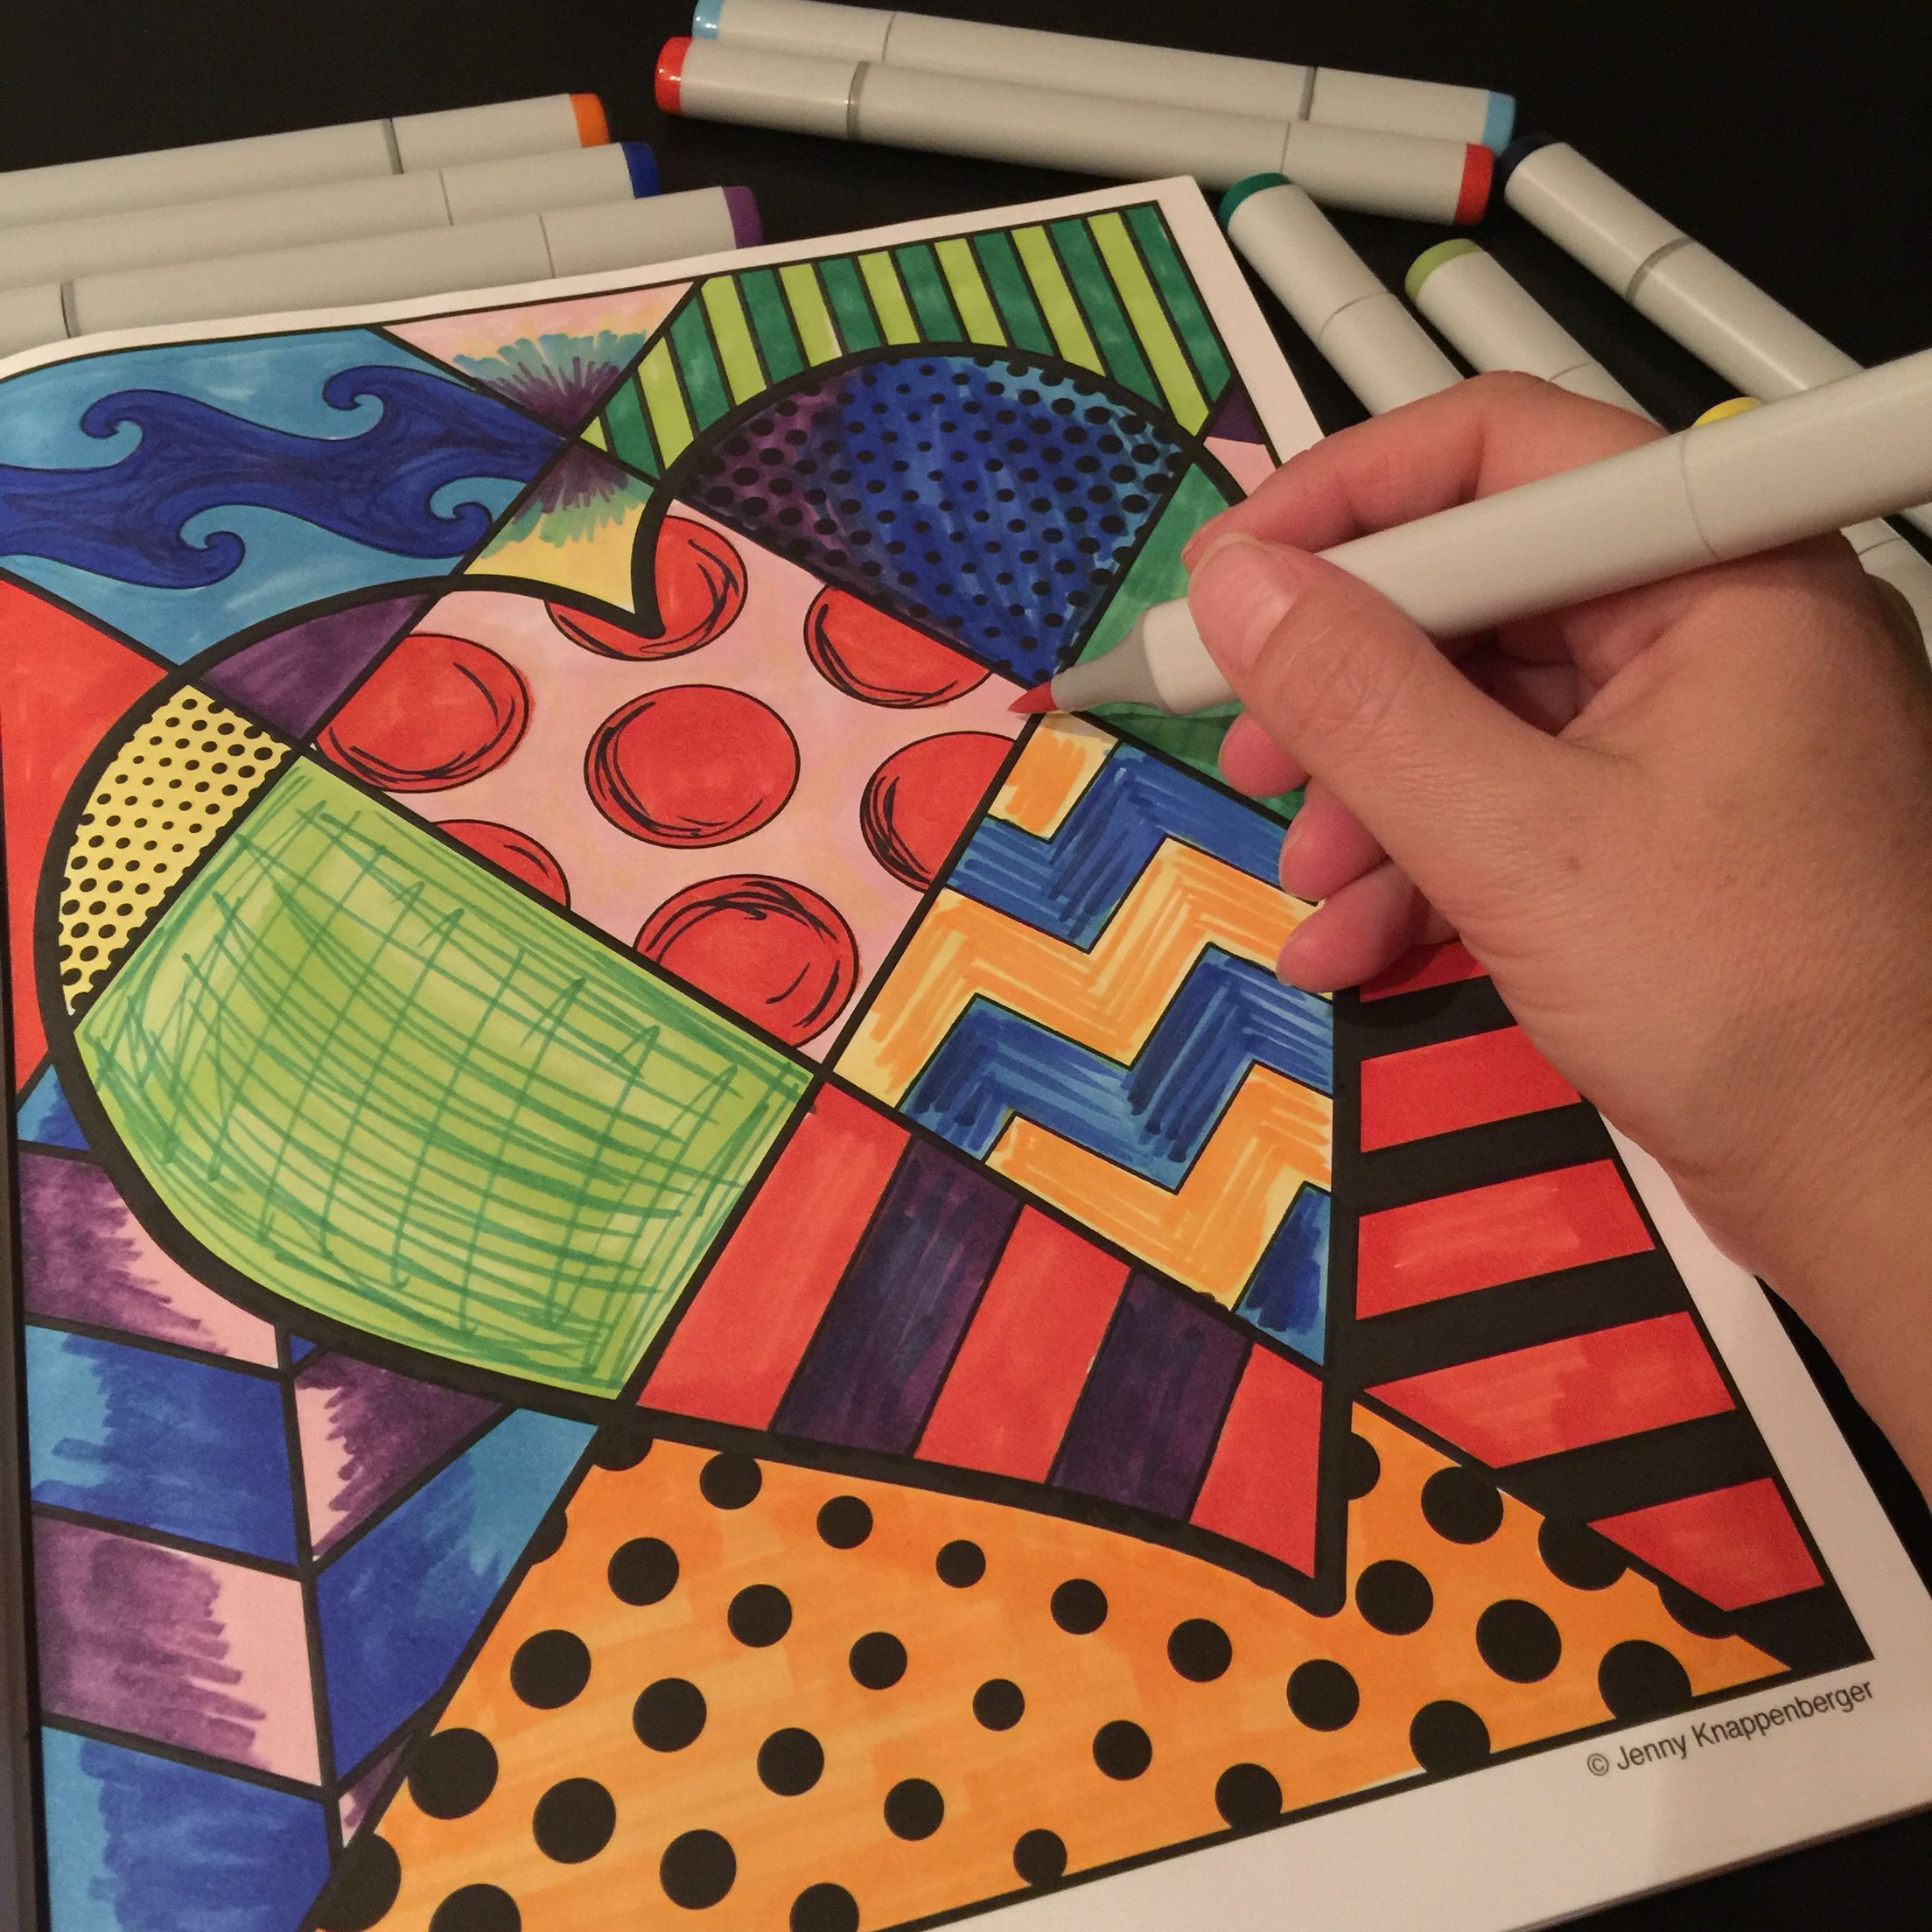 Interactive online adult coloring book - Pop Art Adult Coloring Book Enjoy A Unique Approach To Adult Coloring Books That Puts